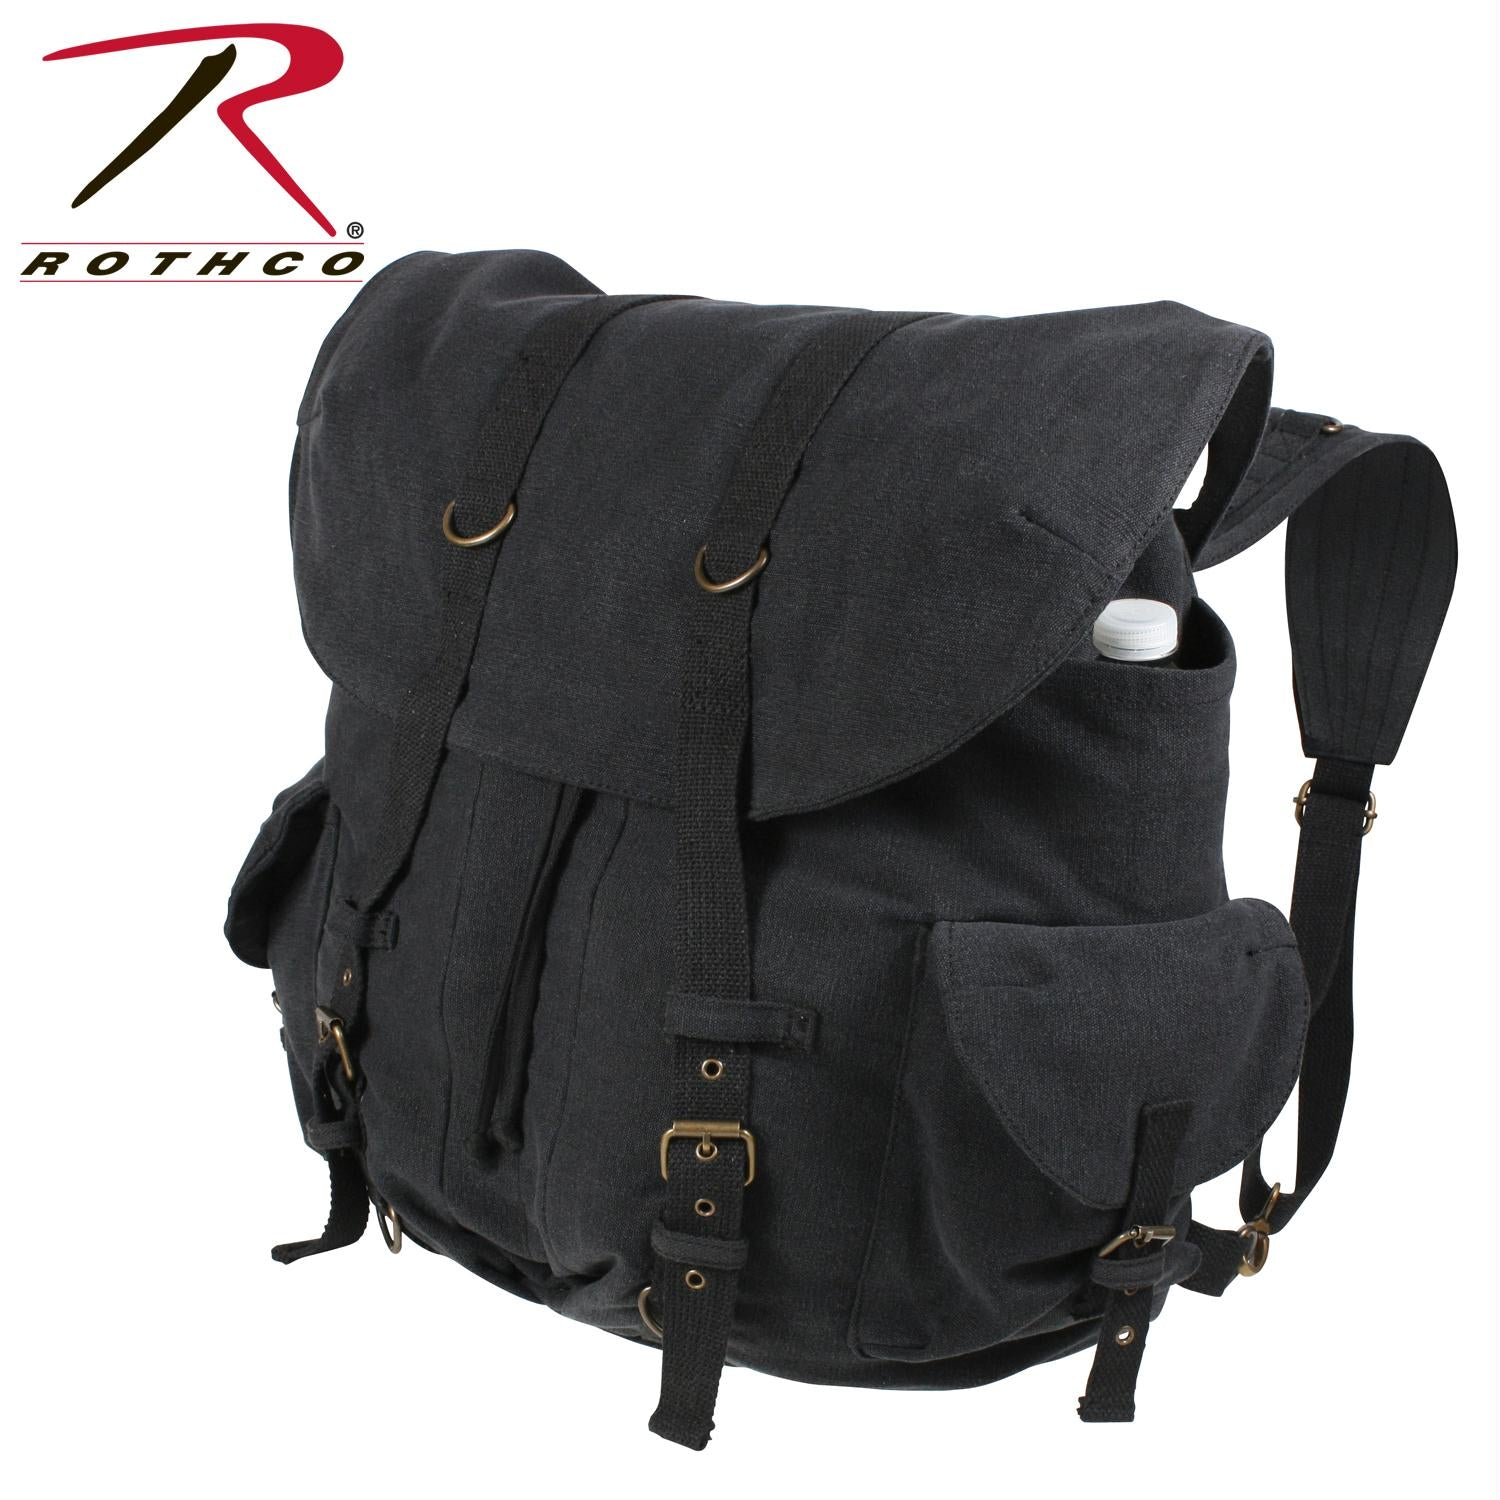 Rothco Vintage Weekender Canvas Backpack - Black